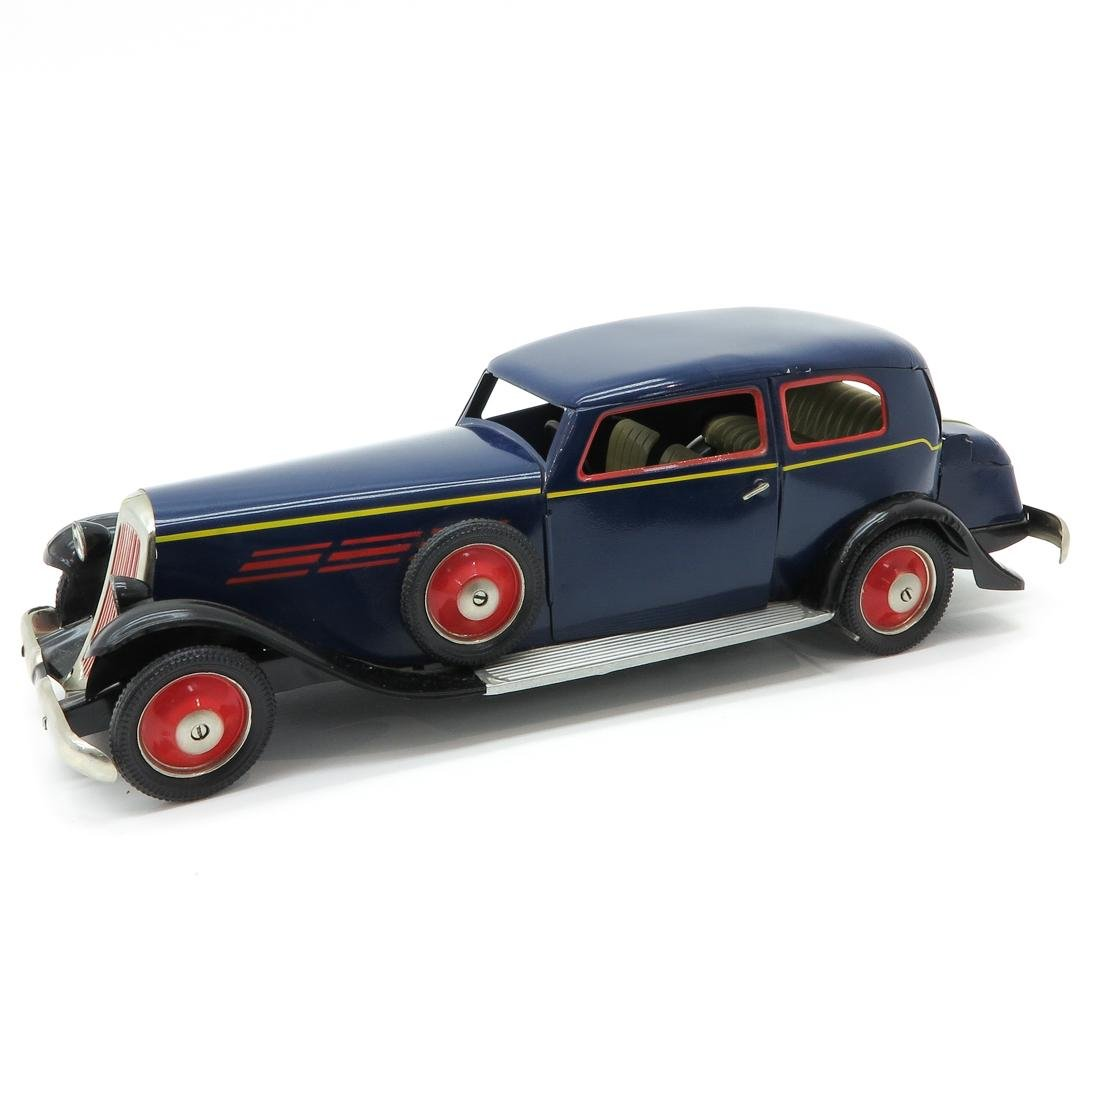 Jaguete Paya 1935 Toy Car - 2